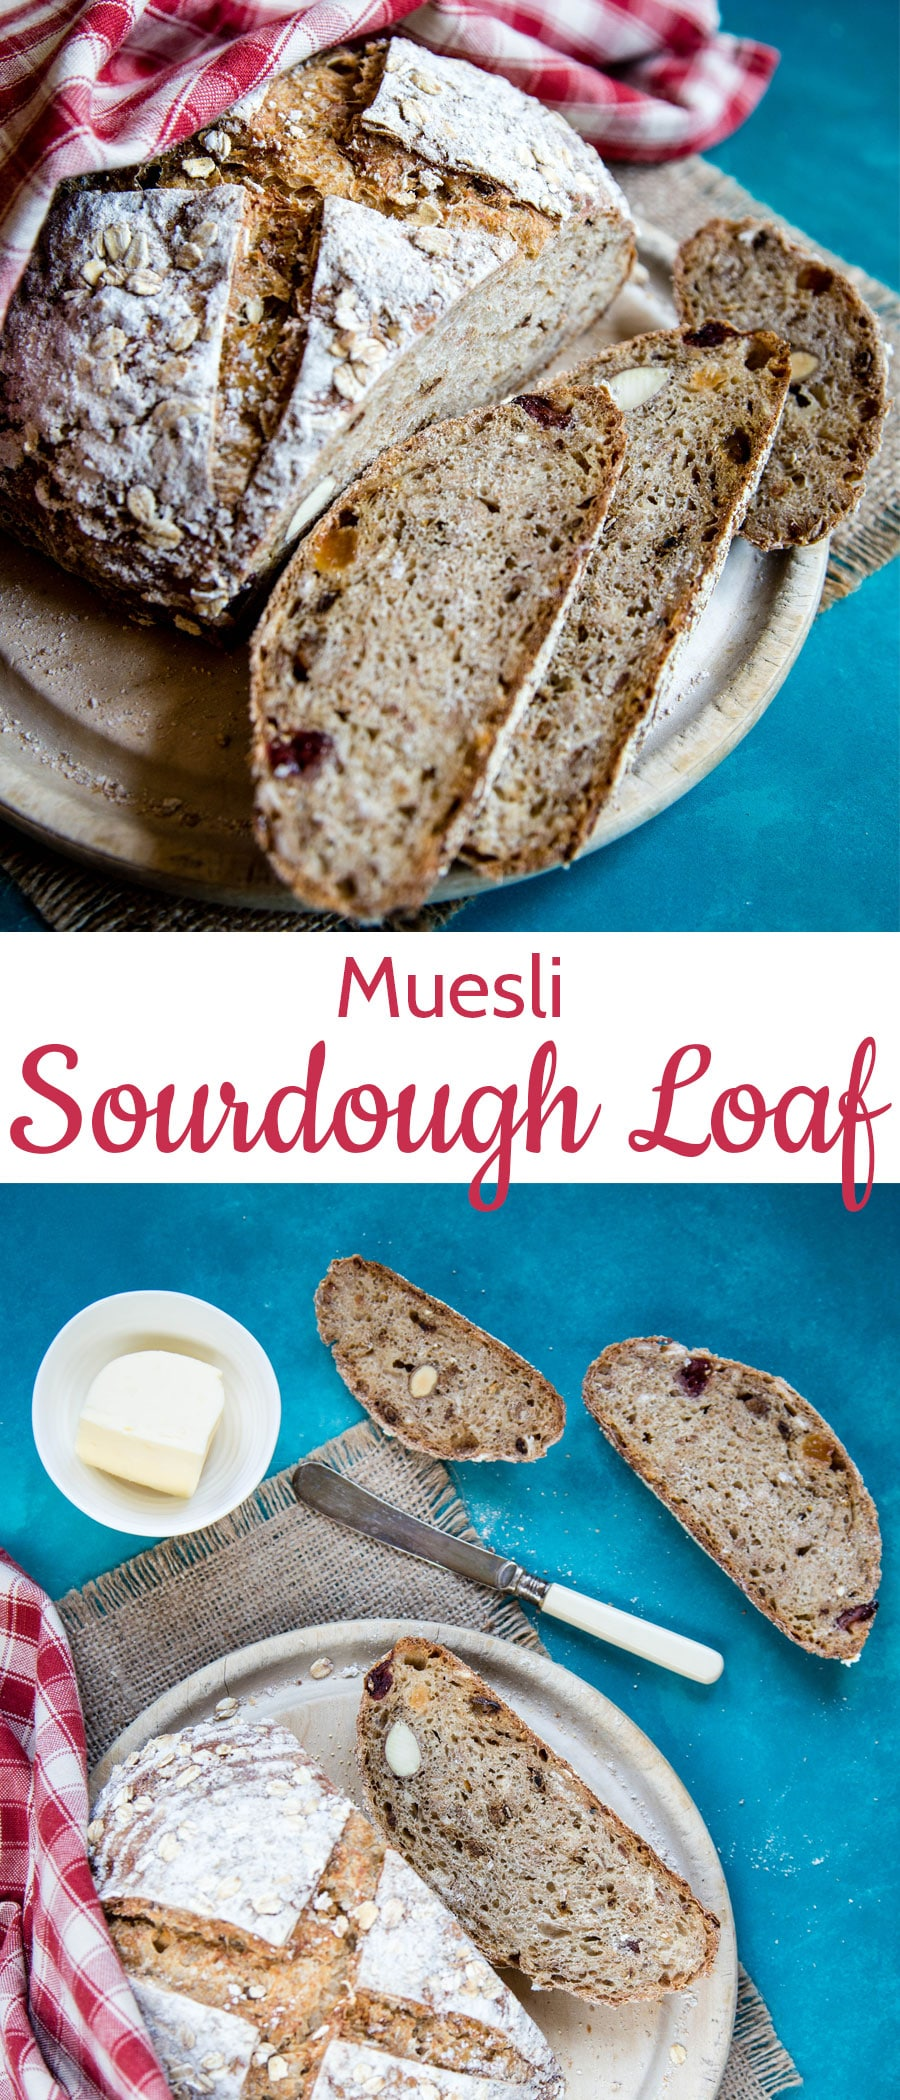 Muesli is an easy source of wholegrain and dried fruit; adding some to a bread like this sourdough gives a delicious and wholesome loaf, just waiting for some tasty jam.